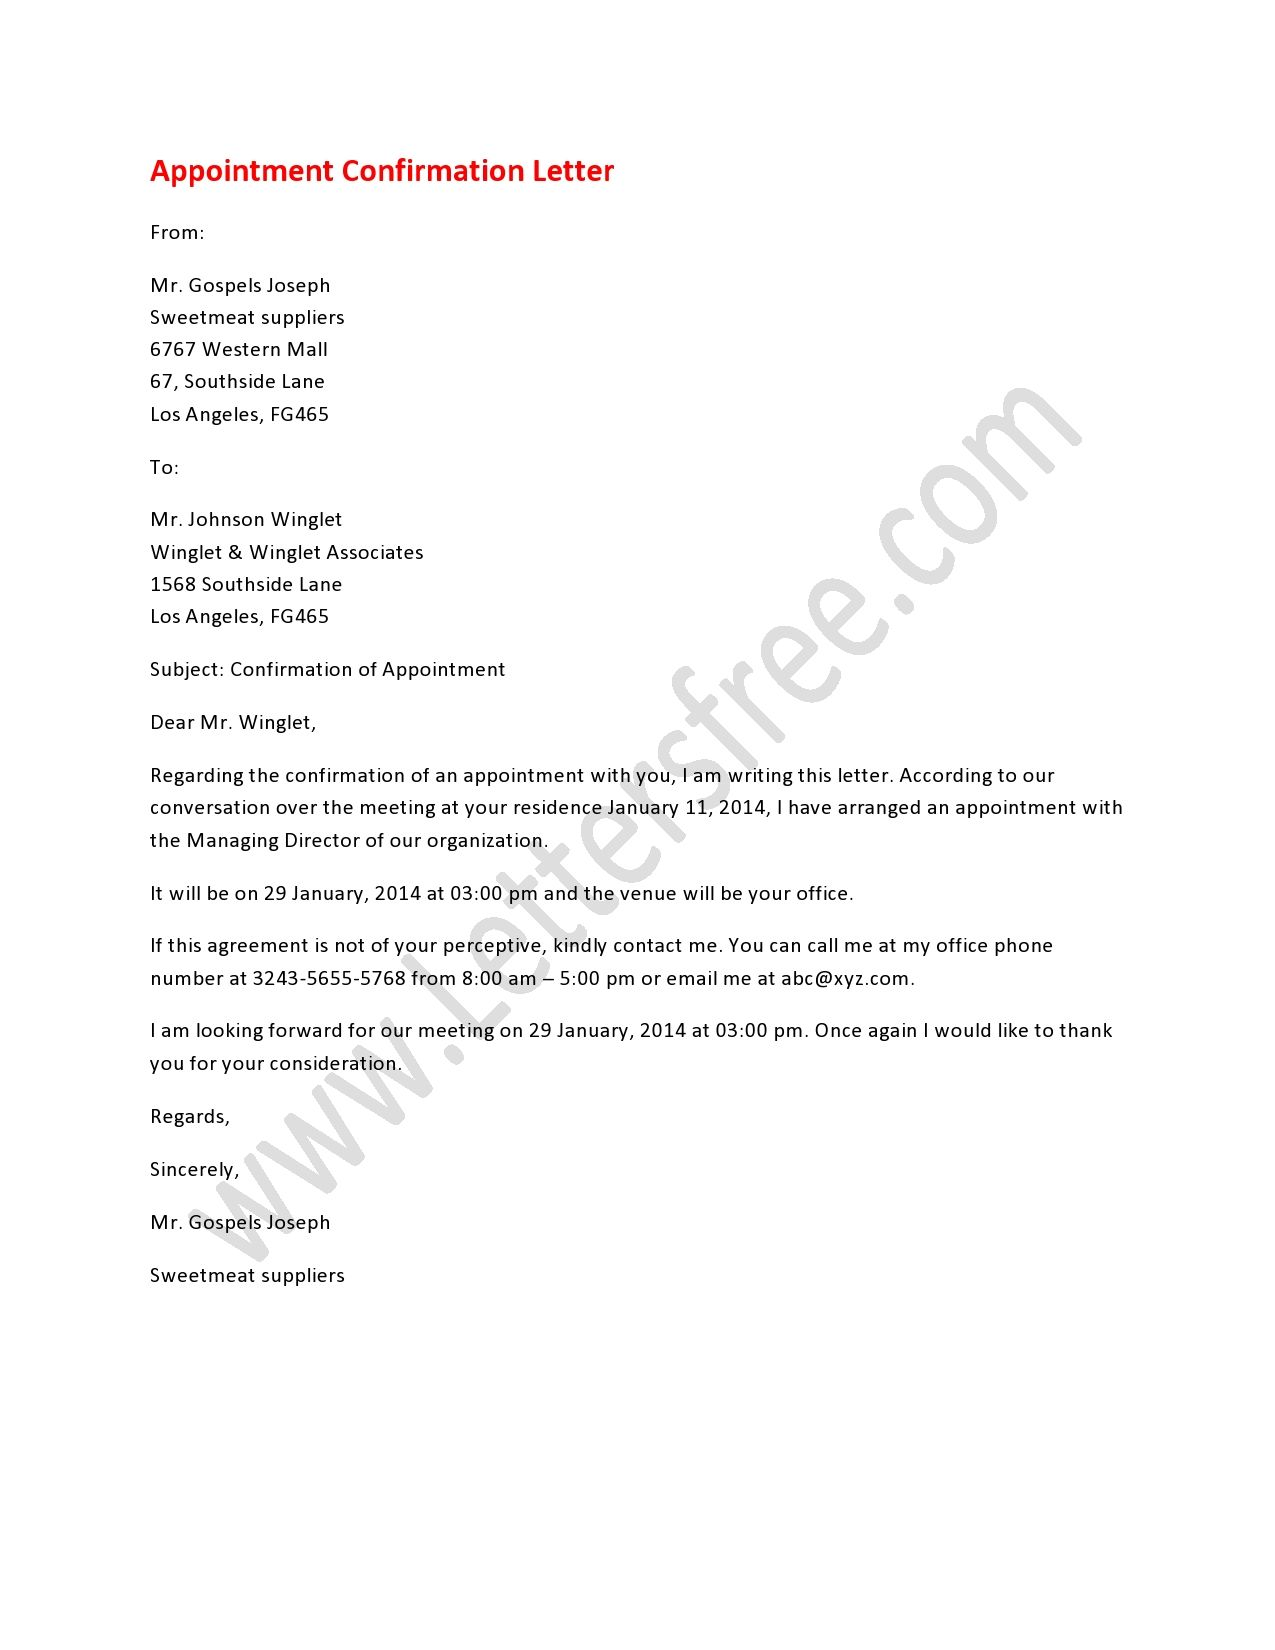 Appointment Confirmation Letter Is A Formal Letter Written For The  Confirmation Of Any Business Meeting Or